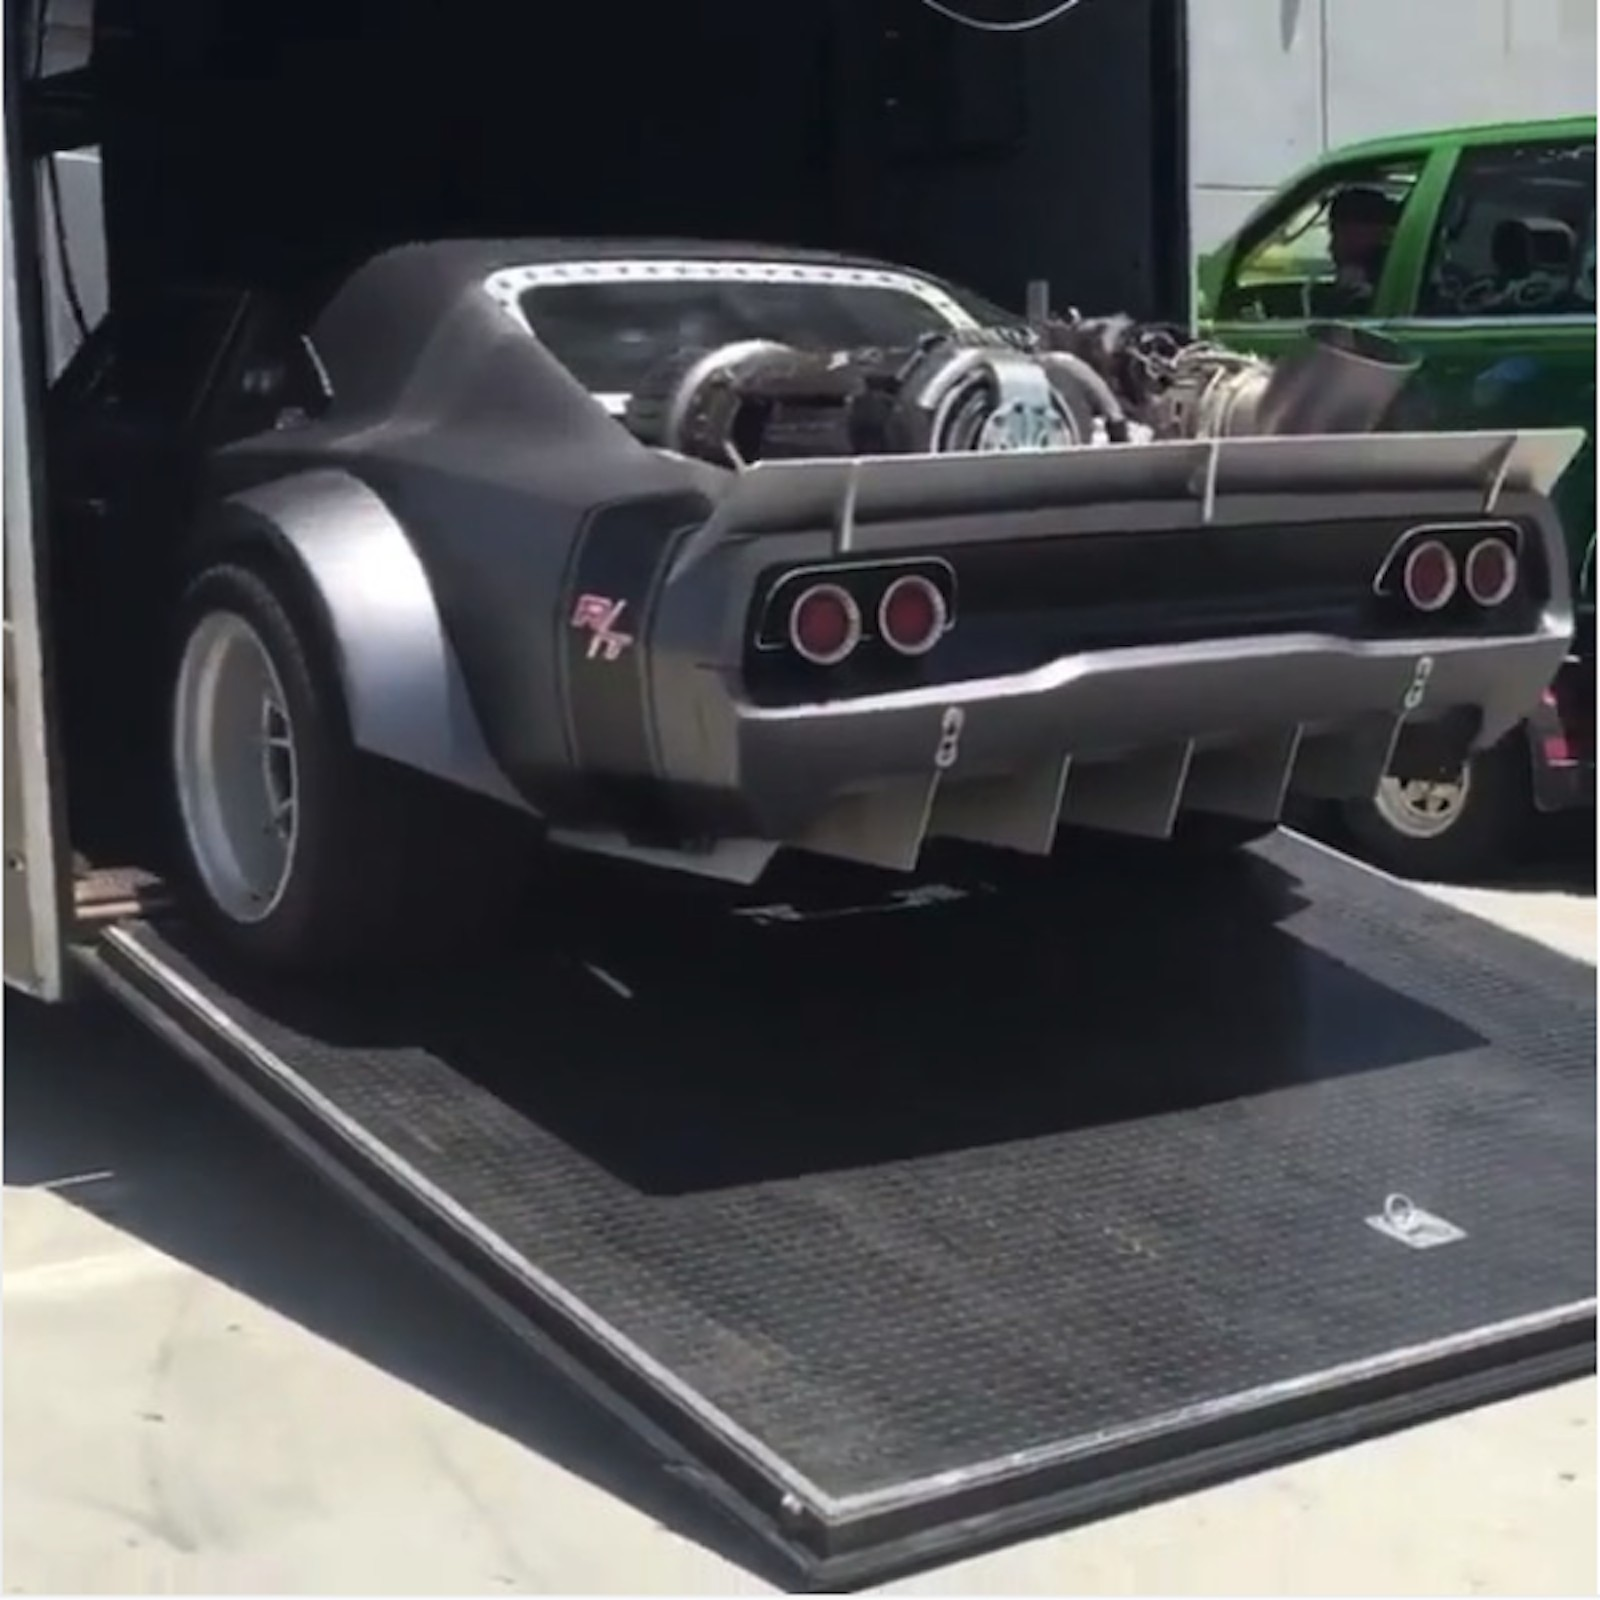 Is That A Jet-powered Charger On Set Of 'Fast 8' Movie?